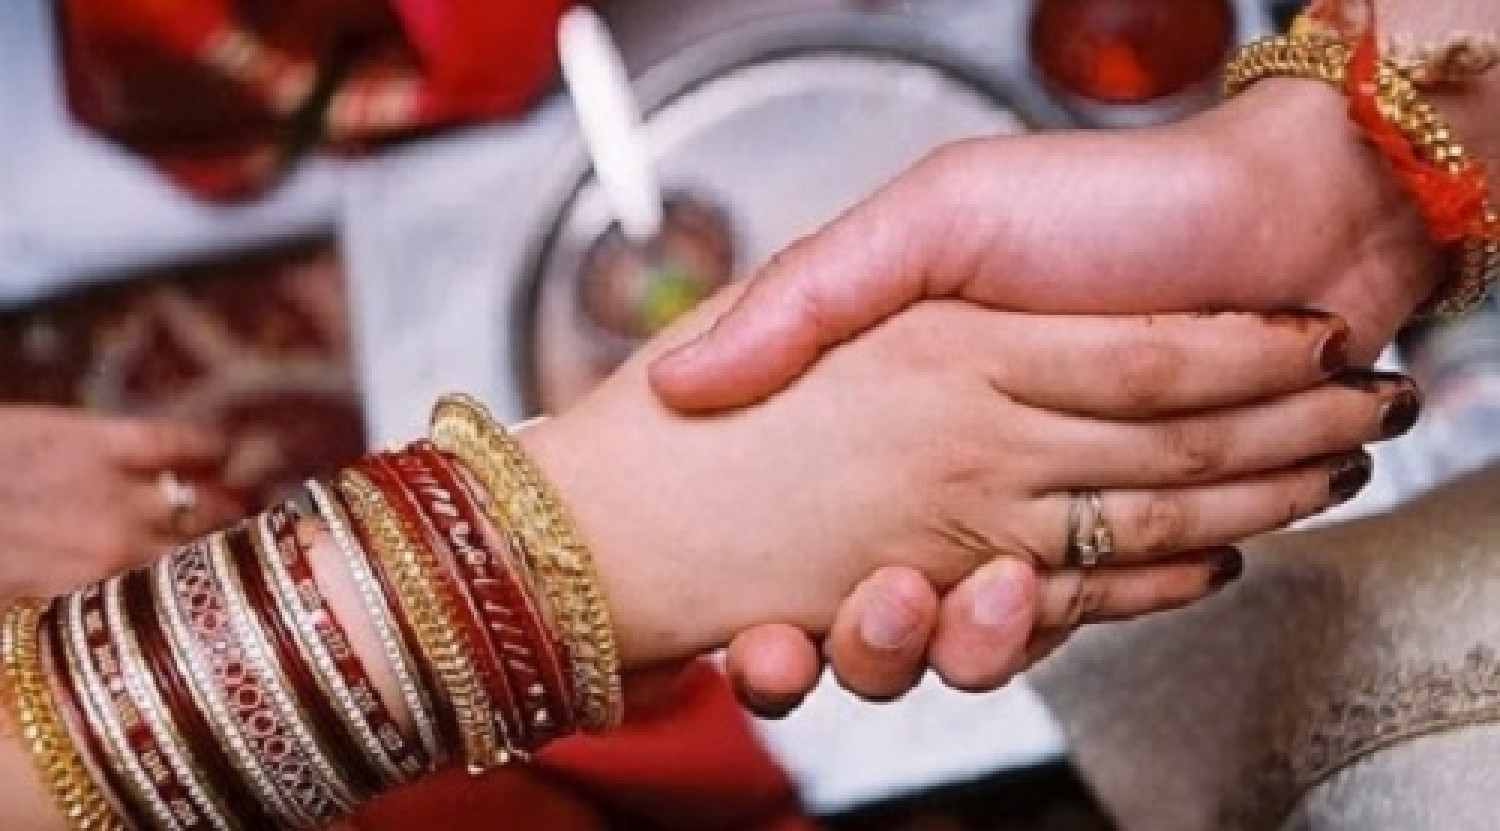 Shiv Parvati Mantra For Marriage - Shiv Mantra To Marry Desired Person Infographic